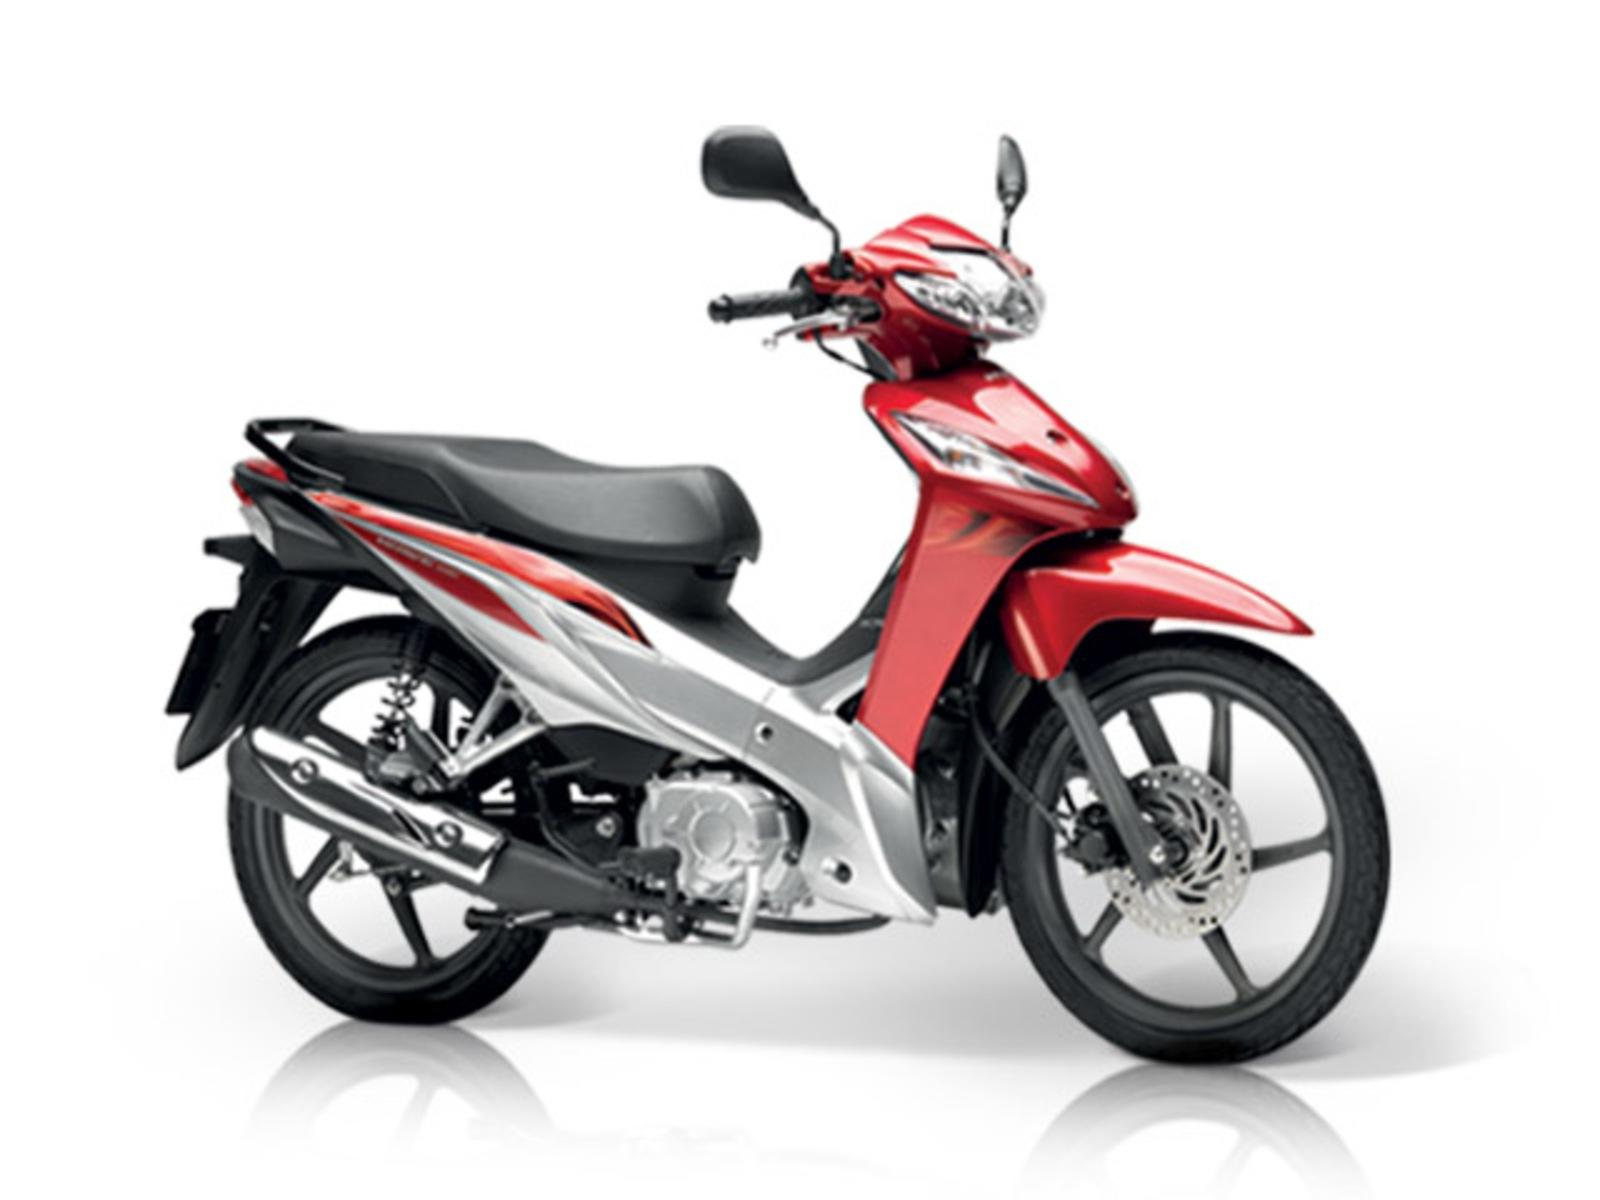 2014 honda wave 110i review - top speed